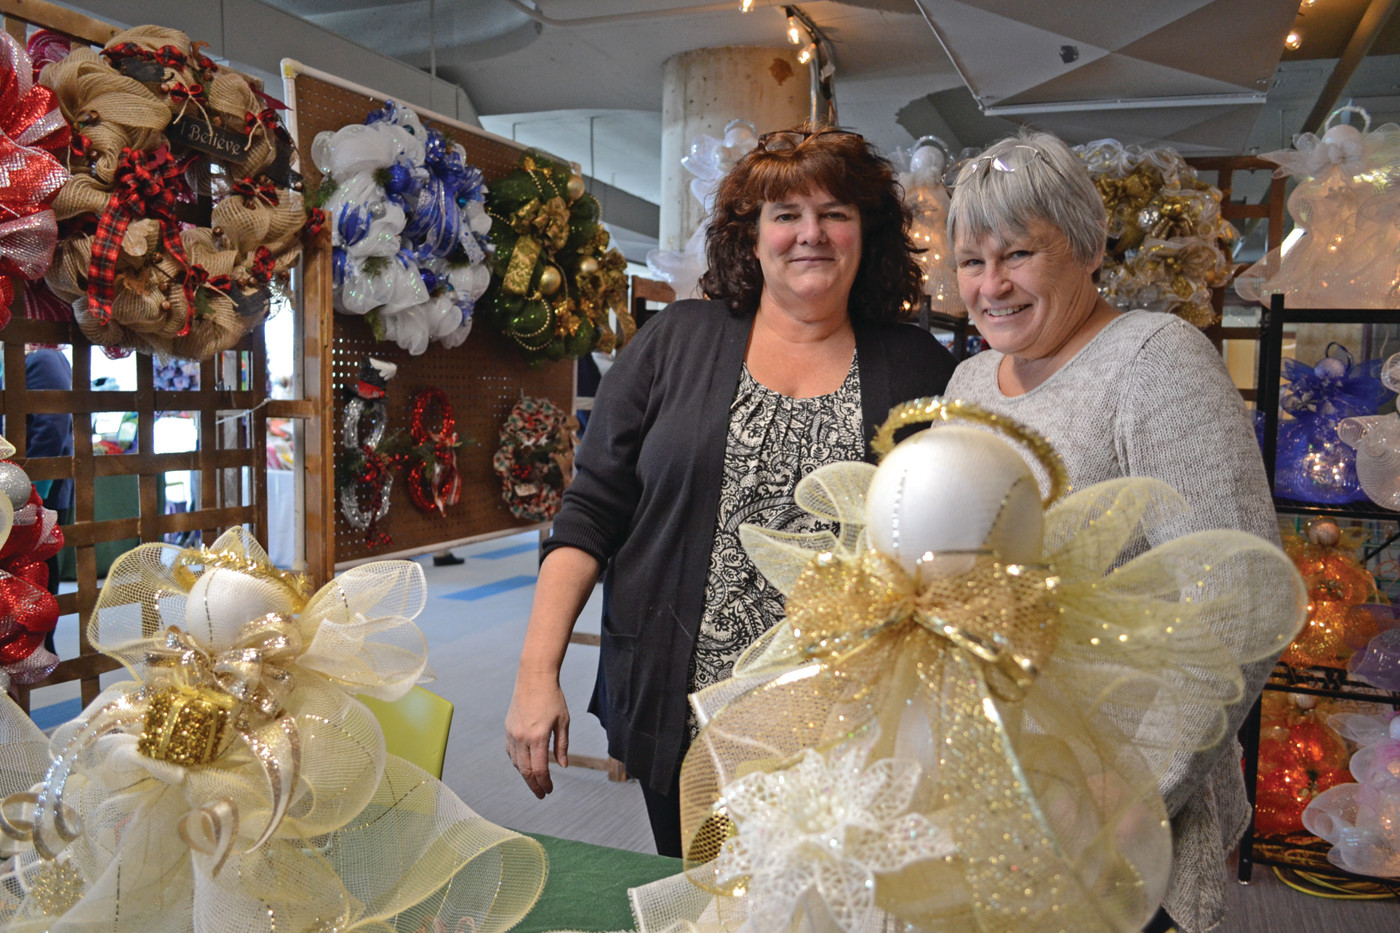 DOWNRIGHT ADORNABLE: Maureen King, purveyor of A Wreath 4 Every Season, and Deanna Mann were selling handmade wreaths at the CCRI Artisans Holiday Show on Friday.